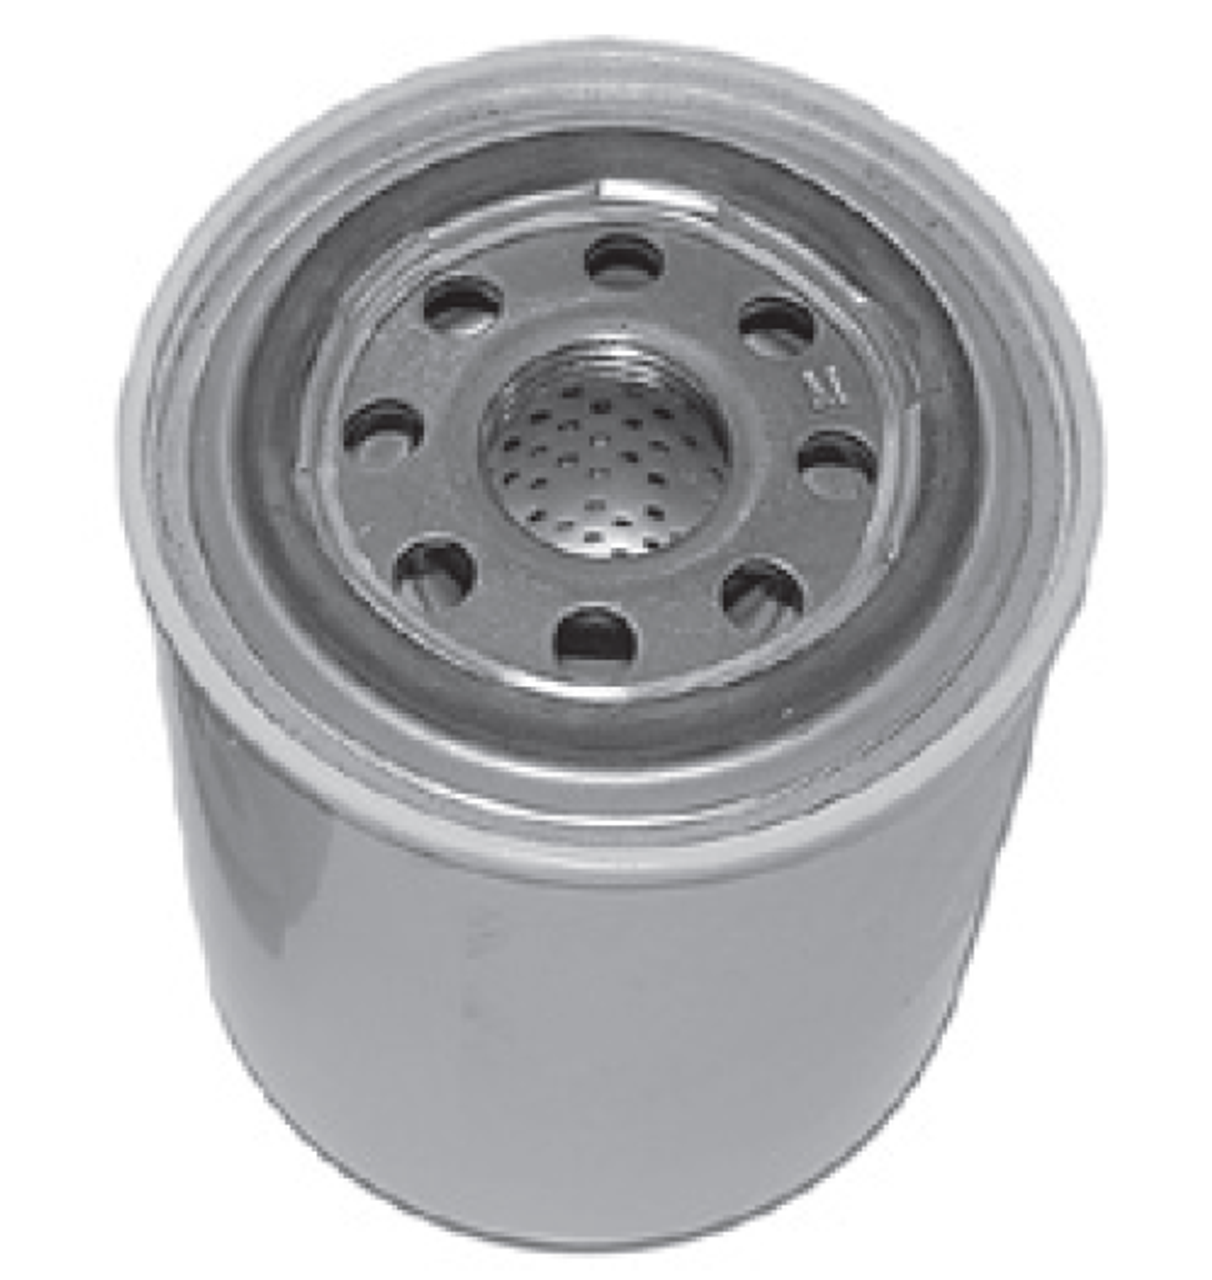 New Aftermarket Mercury/Mariner/Yamaha 3/4/6 Cylinder 10 Micron Fuel Water Separator [Replaces OEM #802893Q]